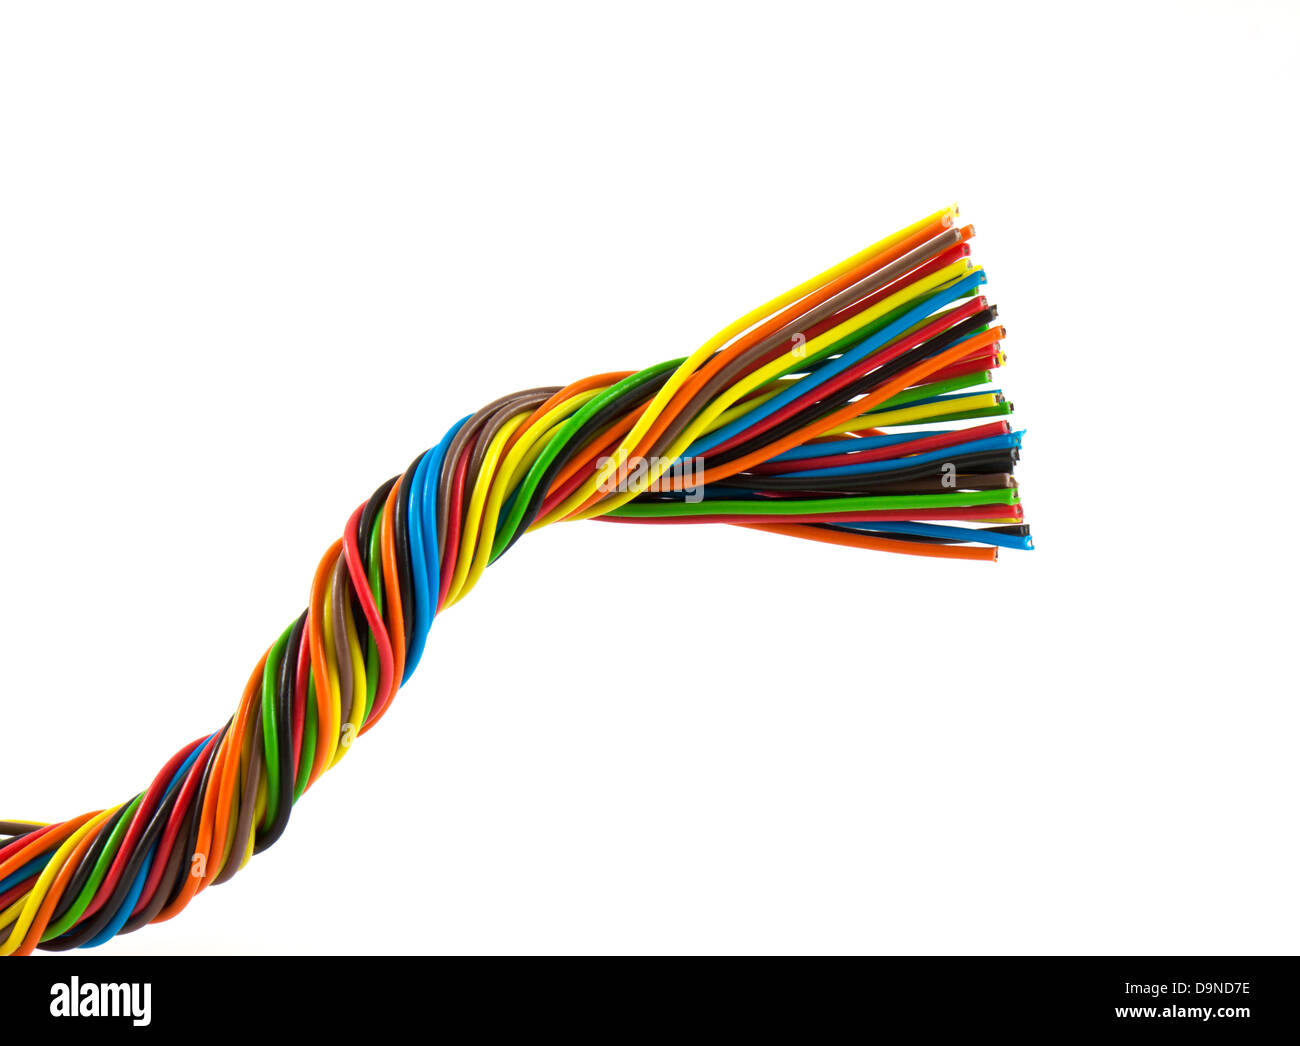 Color wires isolated on white background Stock Photo: 57634402 - Alamy